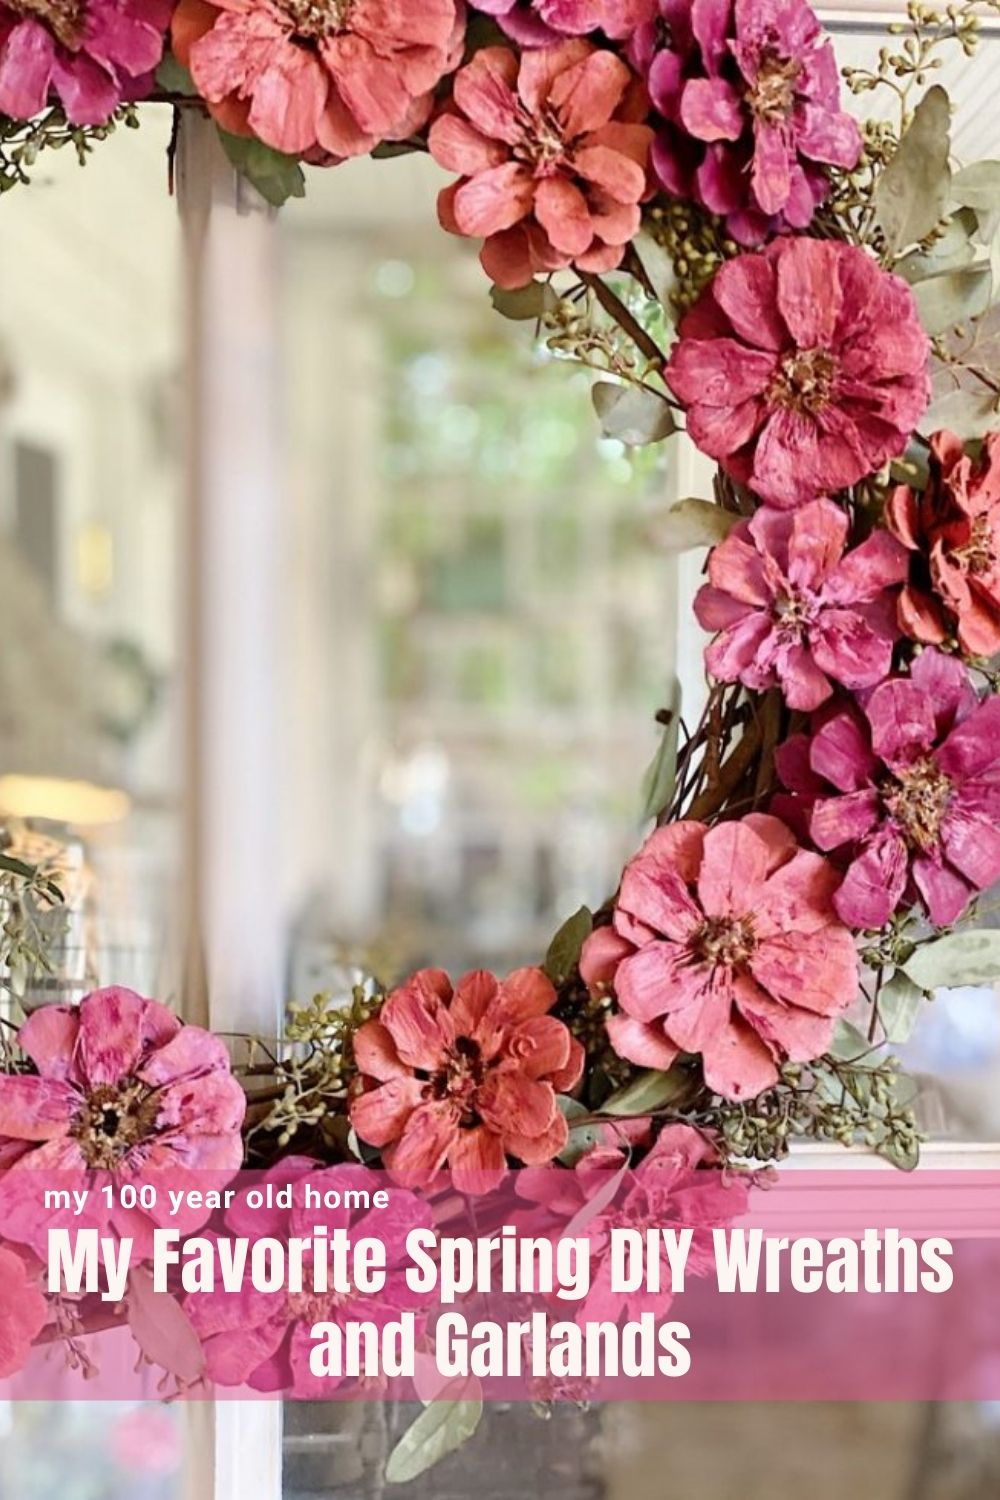 I love to make wreaths and garlands. Wreaths are so much fun to make and today I am sharing my favorite DIY wreaths and garlands for spring.